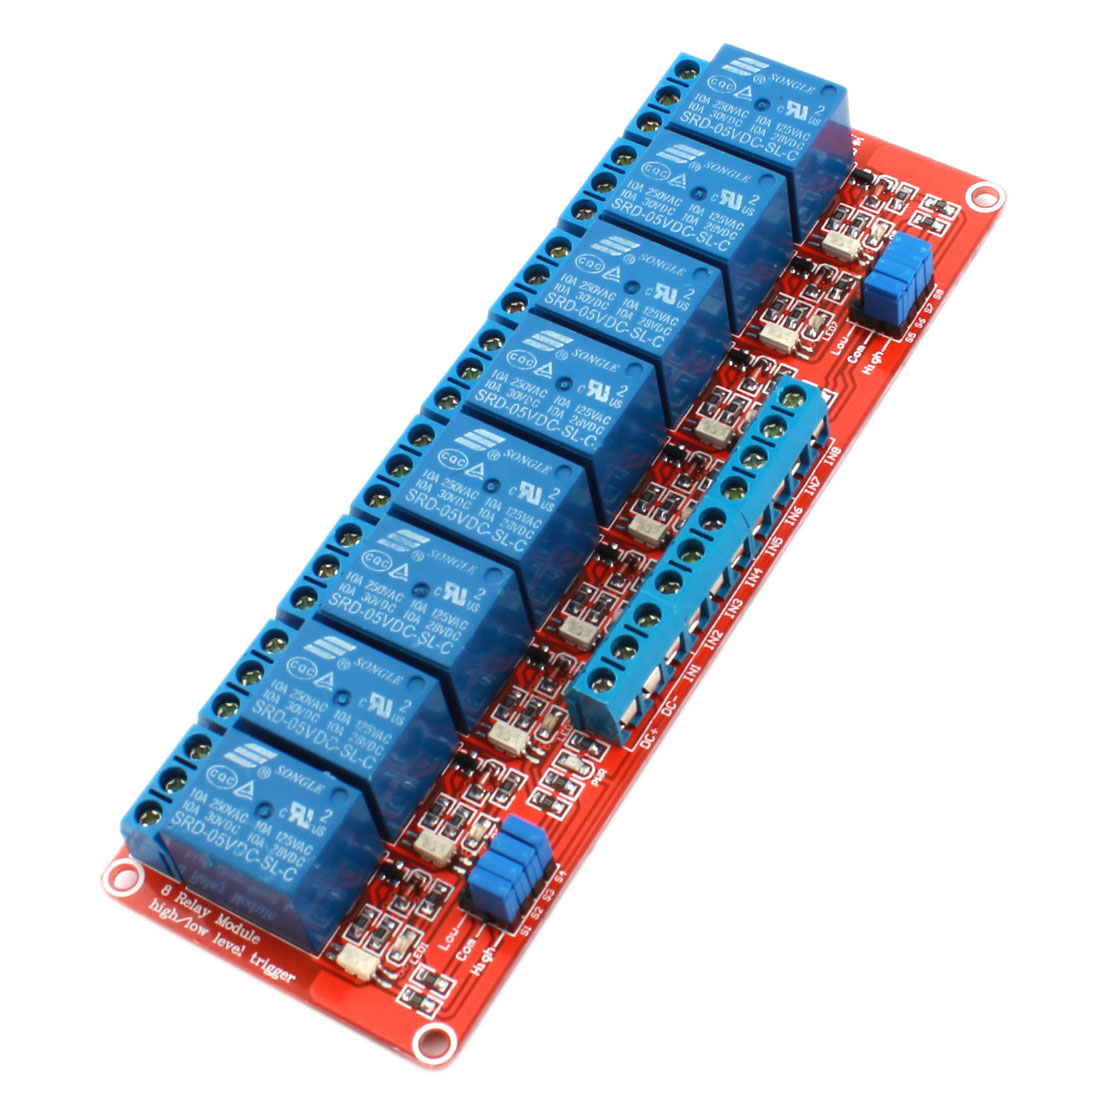 SRD-05VDC-SL-C 8 Channel High/Low Level Trigger Optical Coupler Relay Module DC5V 10A